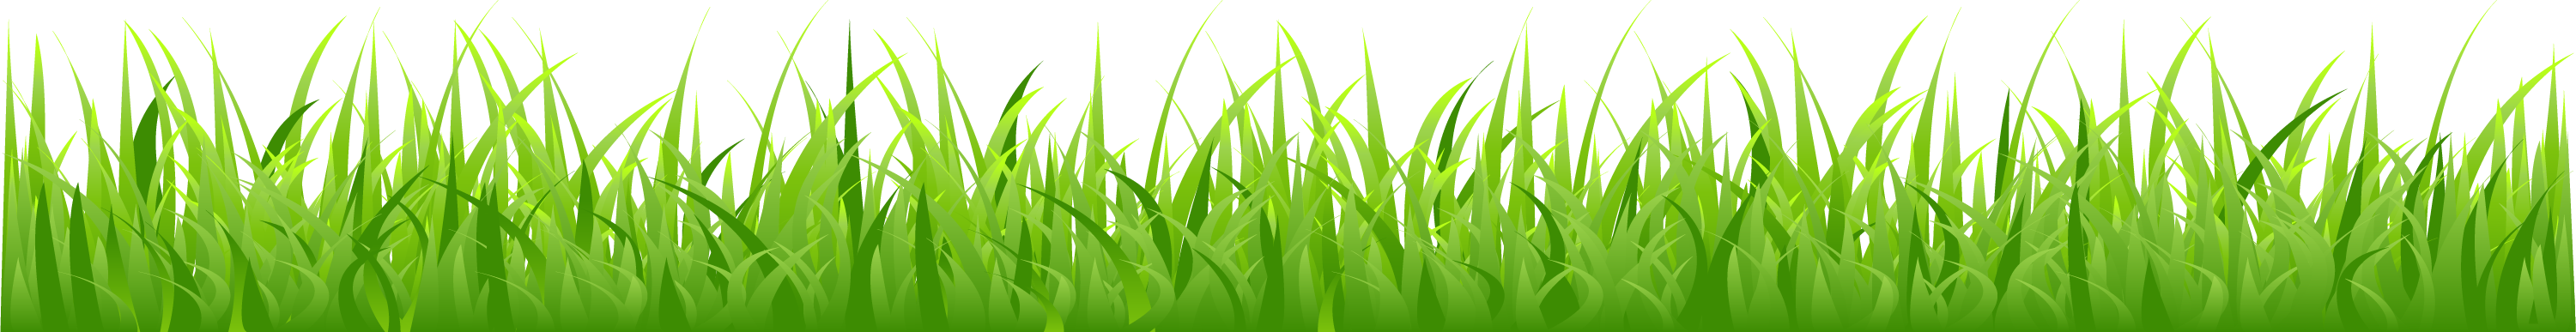 picture library stock Drawing at getdrawings com. Lawn clipart tall grass.